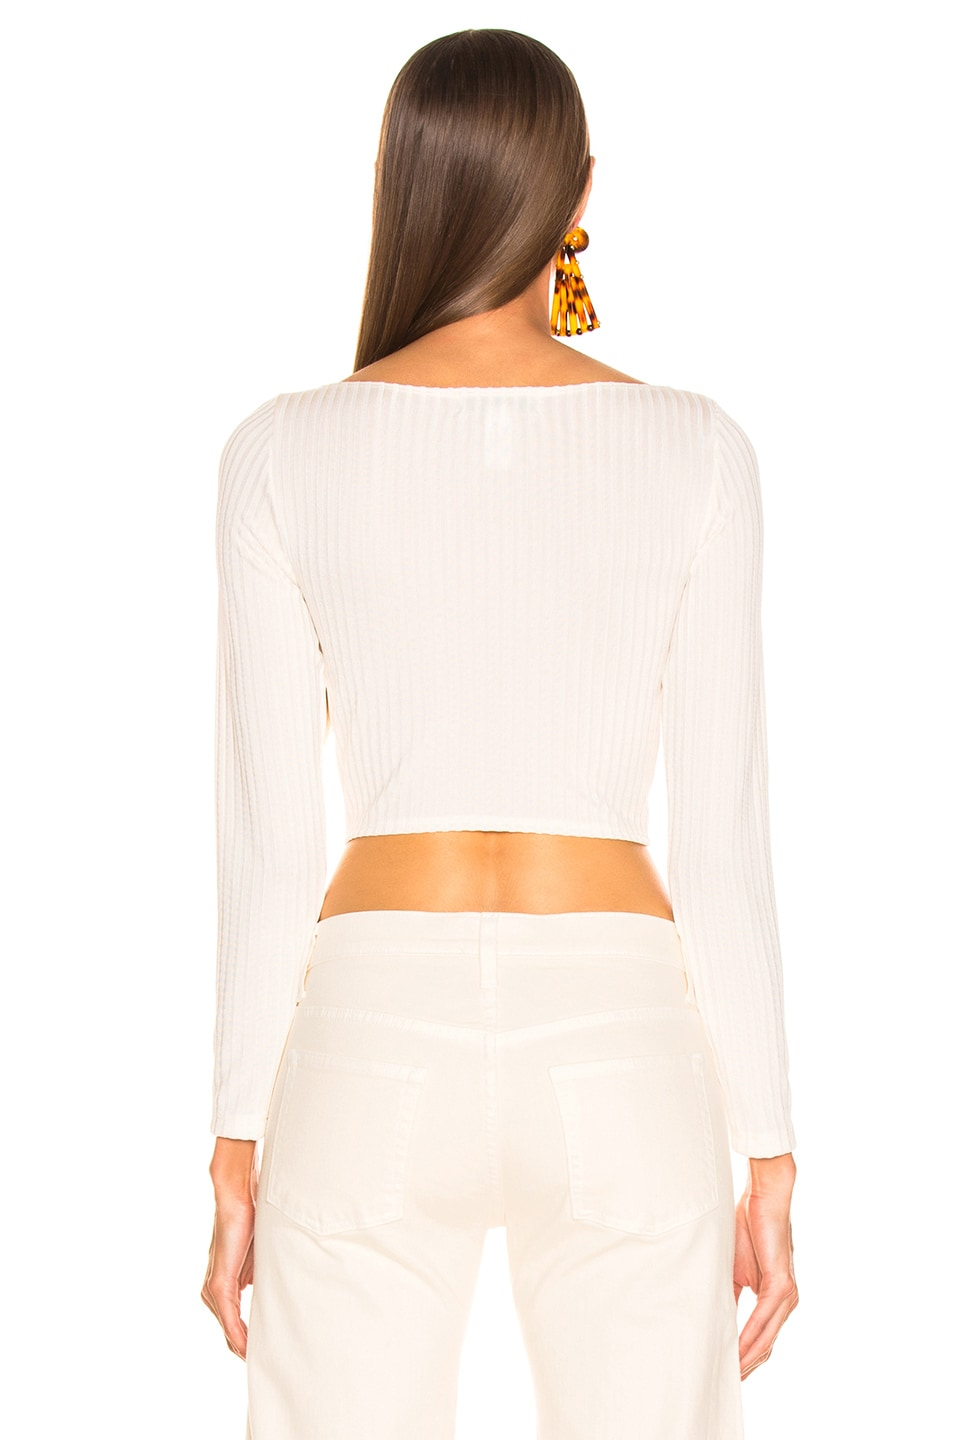 Image 3 of fleur du mal Long Sleeve Knit Bra Top in Ivory